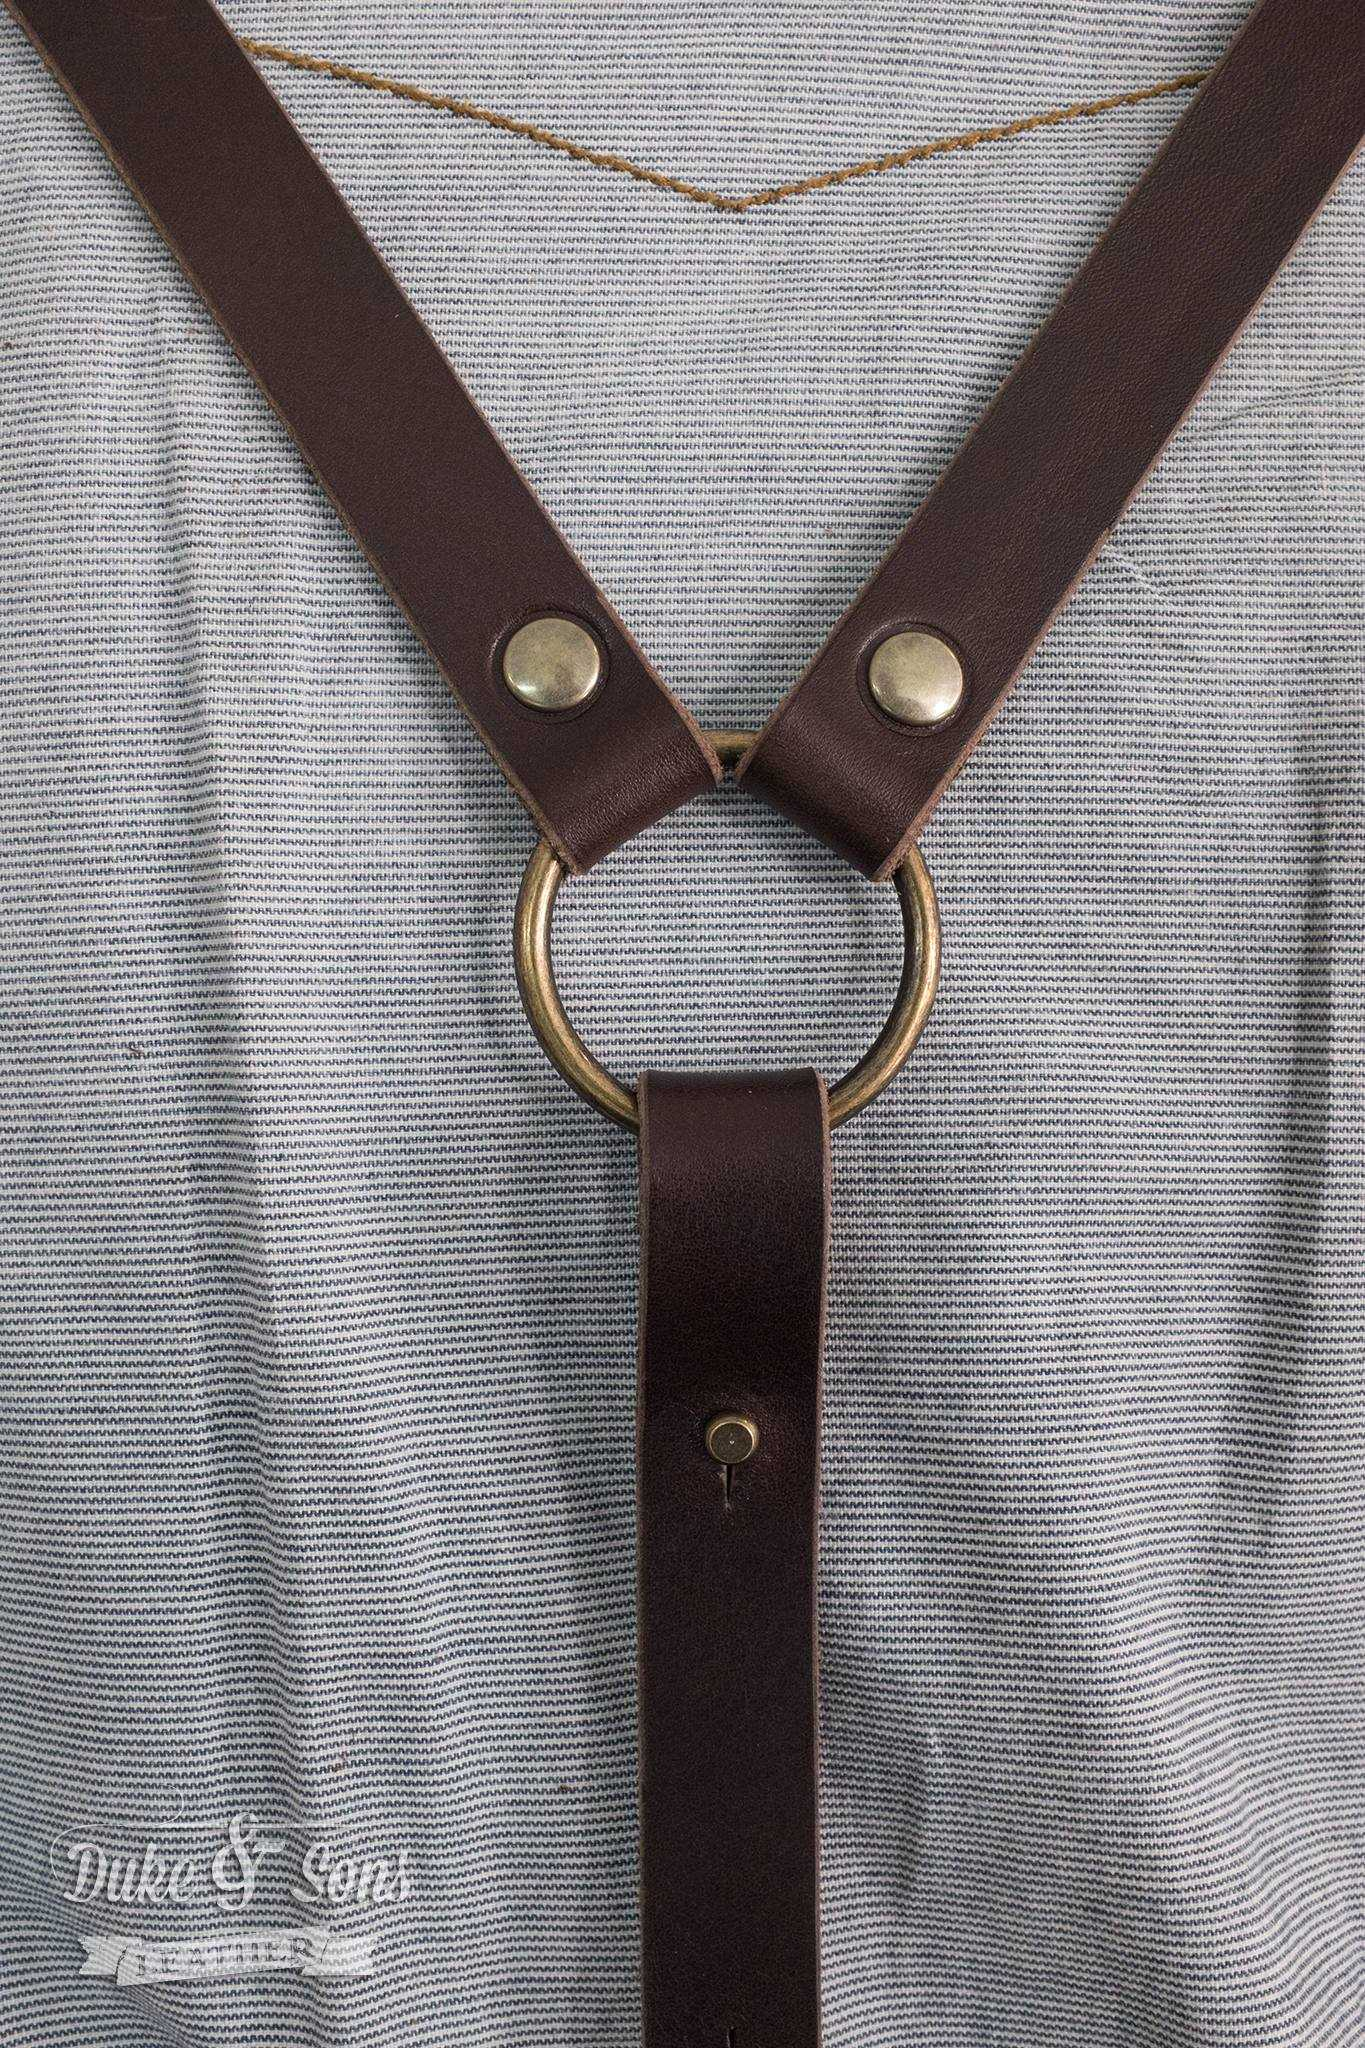 Back strap. Barber Apron ,Japanese Wabash with dark brown leather parts, handmade, with pockets for shears and combs. Very comfortable to wear all day